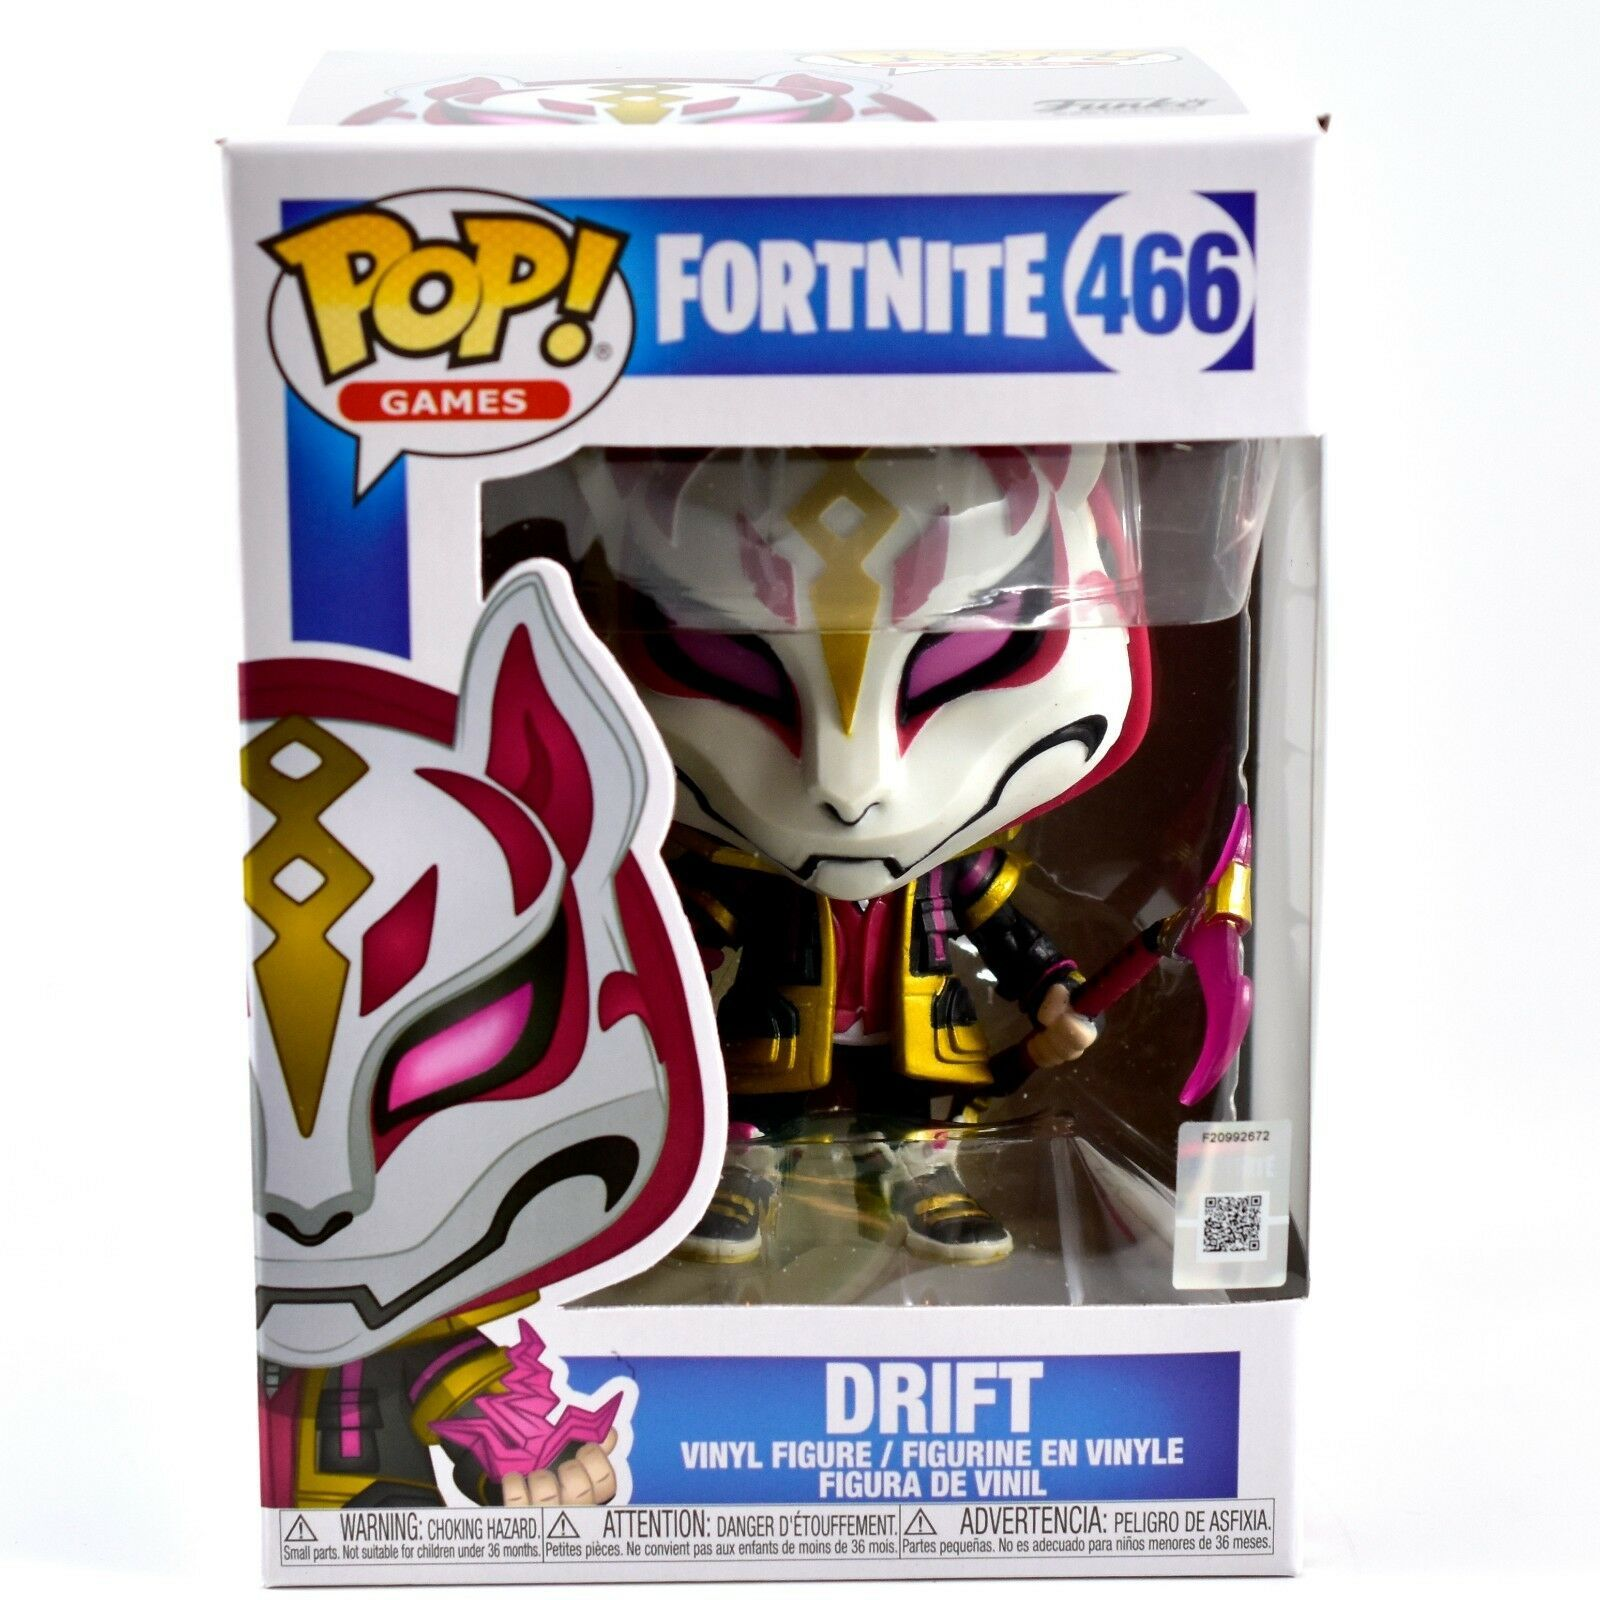 Funko Pop! Games Fortnite Character Drift #466 Vinyl Action Figure NIB IN HAND